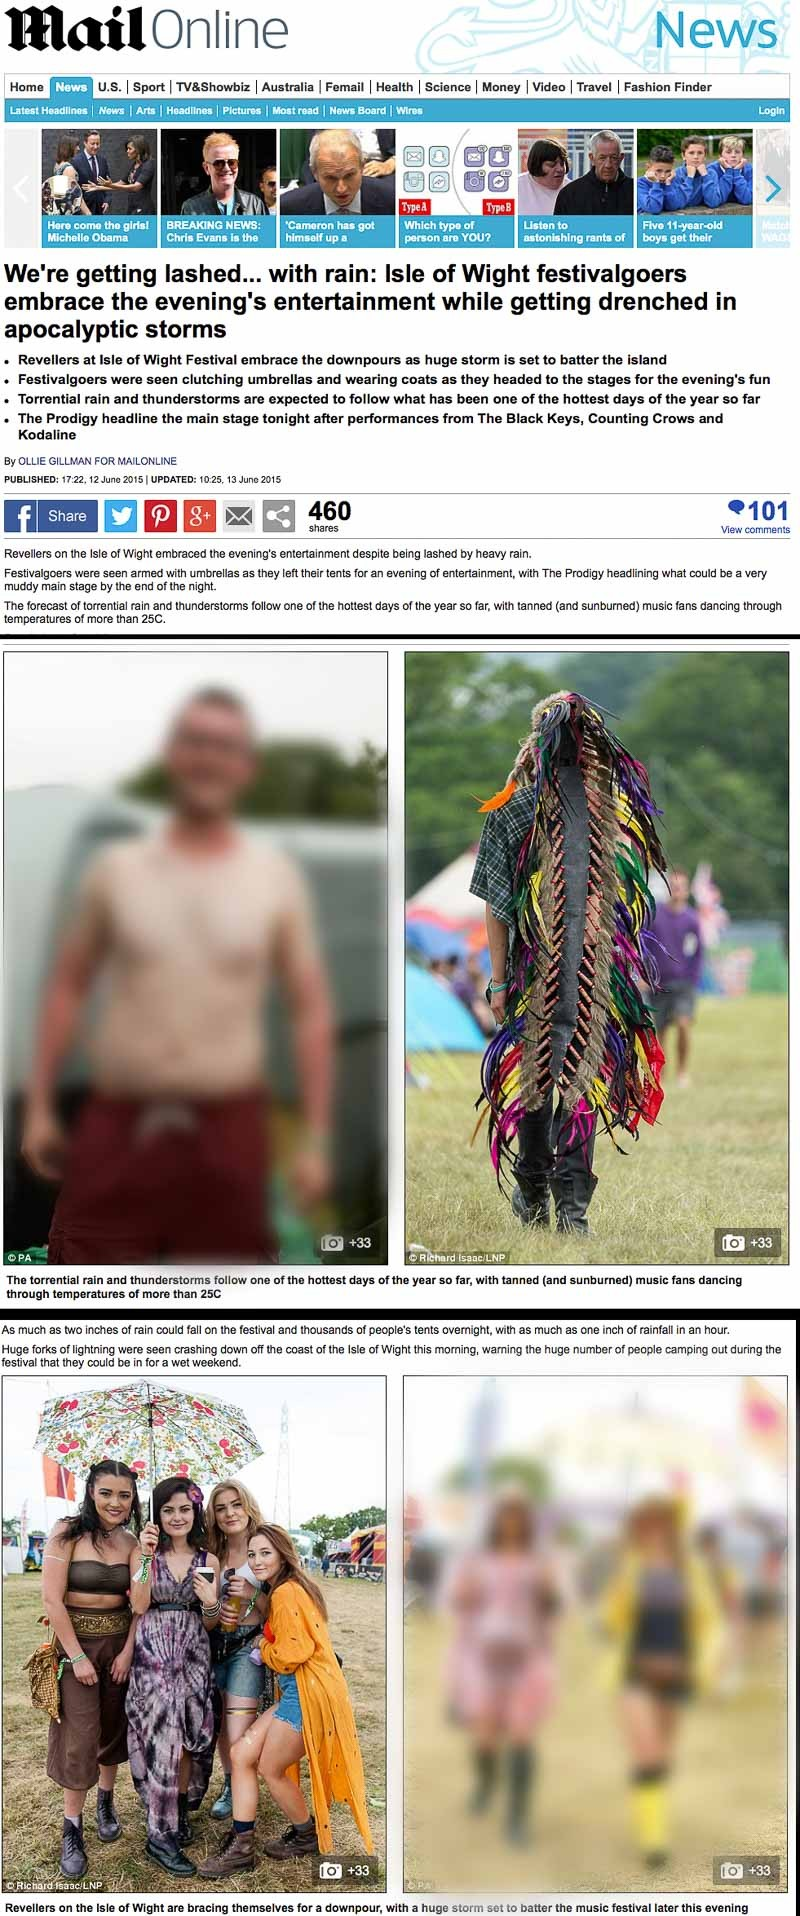 Image usage - Mailonline 12 June 2015 - Isle of Wight Festival 2015